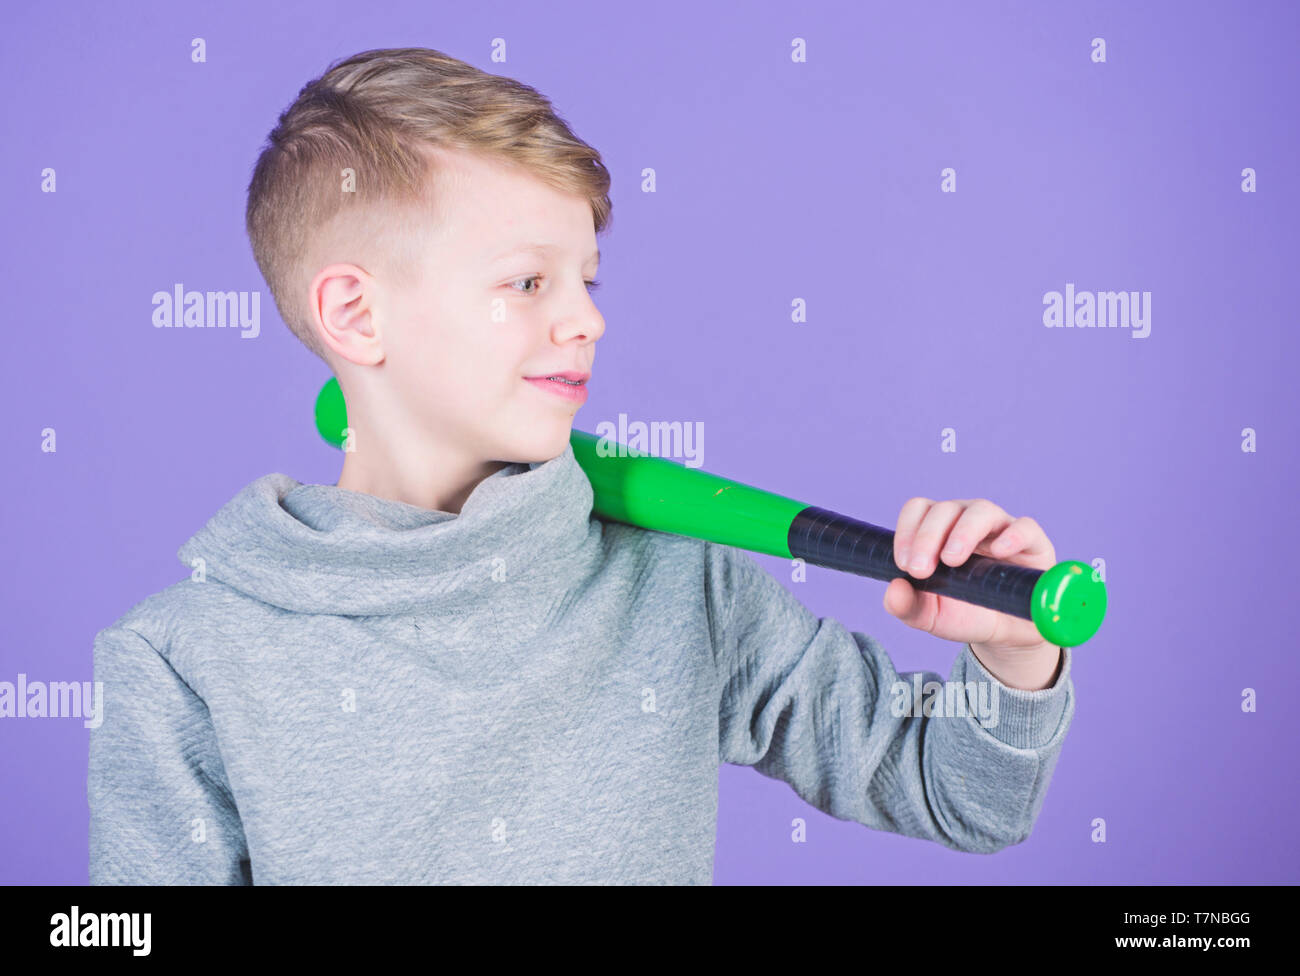 Boy hold baseball bat. Sport and hobby. Teenager boy likes baseball. Active leisure and lifestyle. Healthy childhood. Enjoy active game. Join baseball team. Sport and baseball training concept. - Stock Image